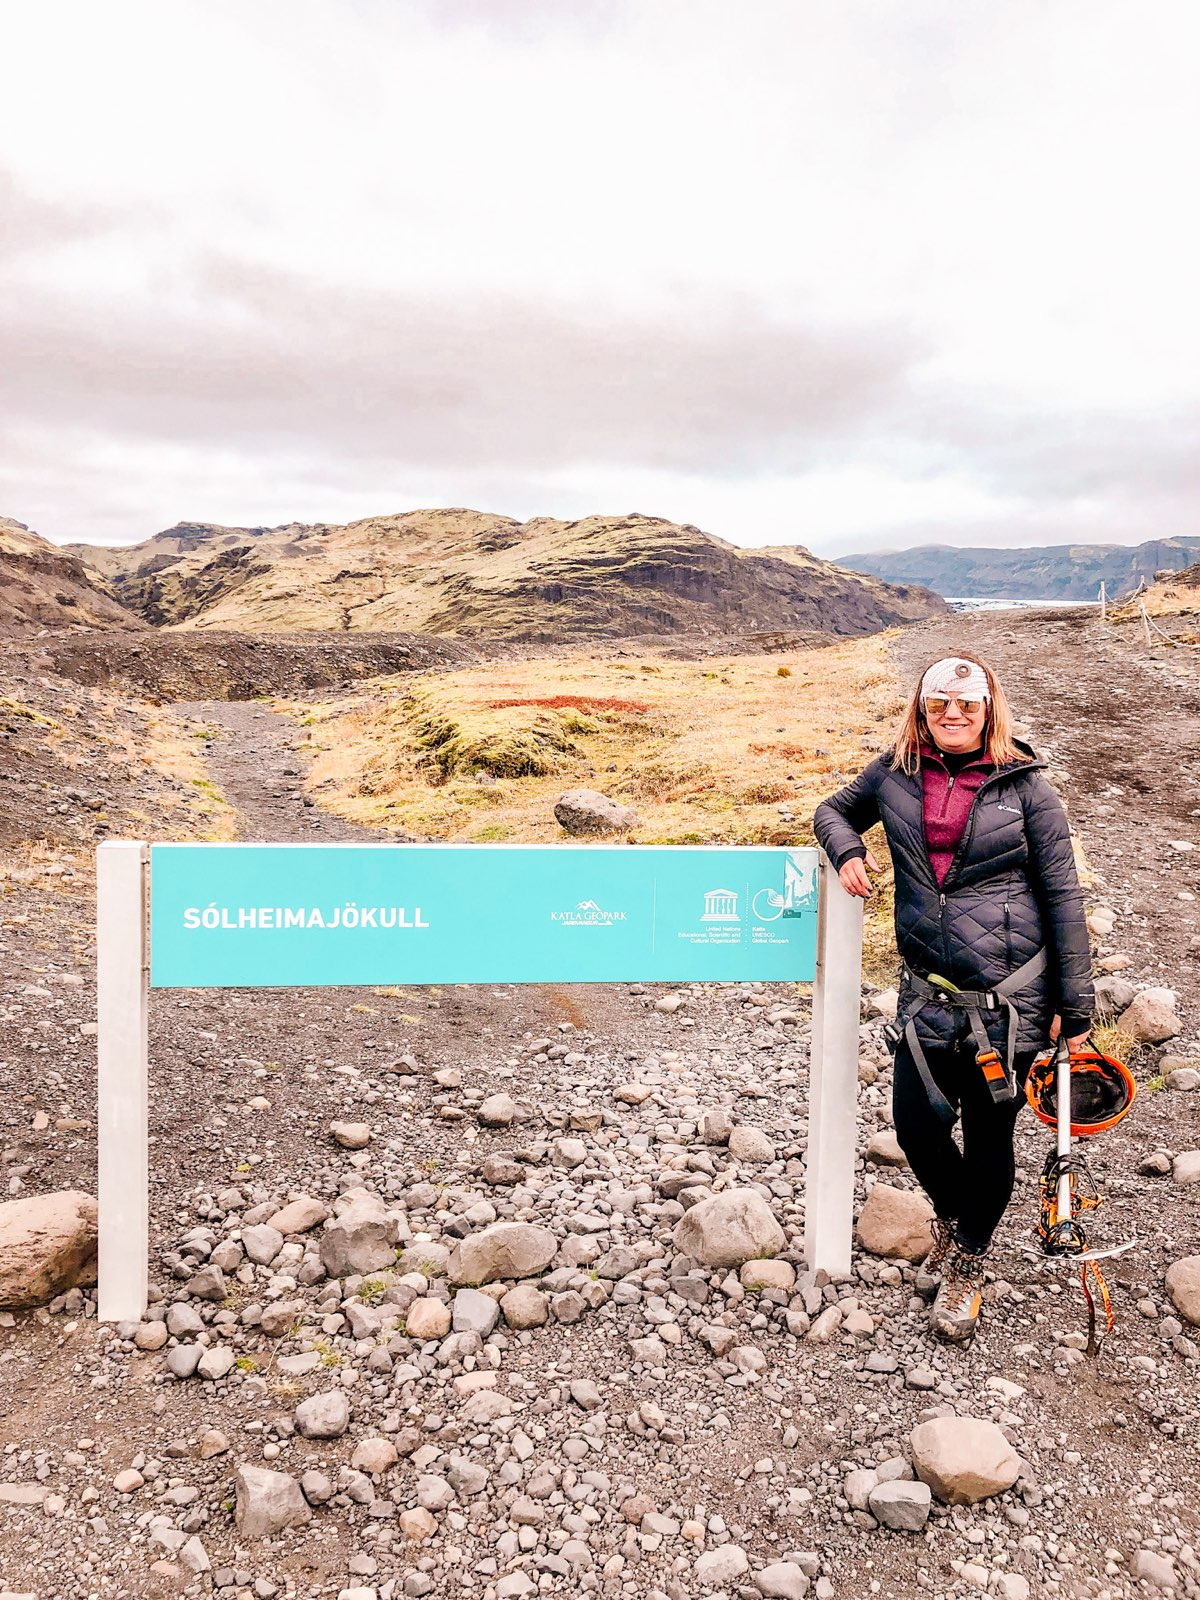 Woman next to sign stating Solheimajokull glacier. Wearing hiking boots carrying a helmet & pick axe prior to a hike on a glacier in Iceland. Wearing sunglasses, fleece & a puffer jacket.